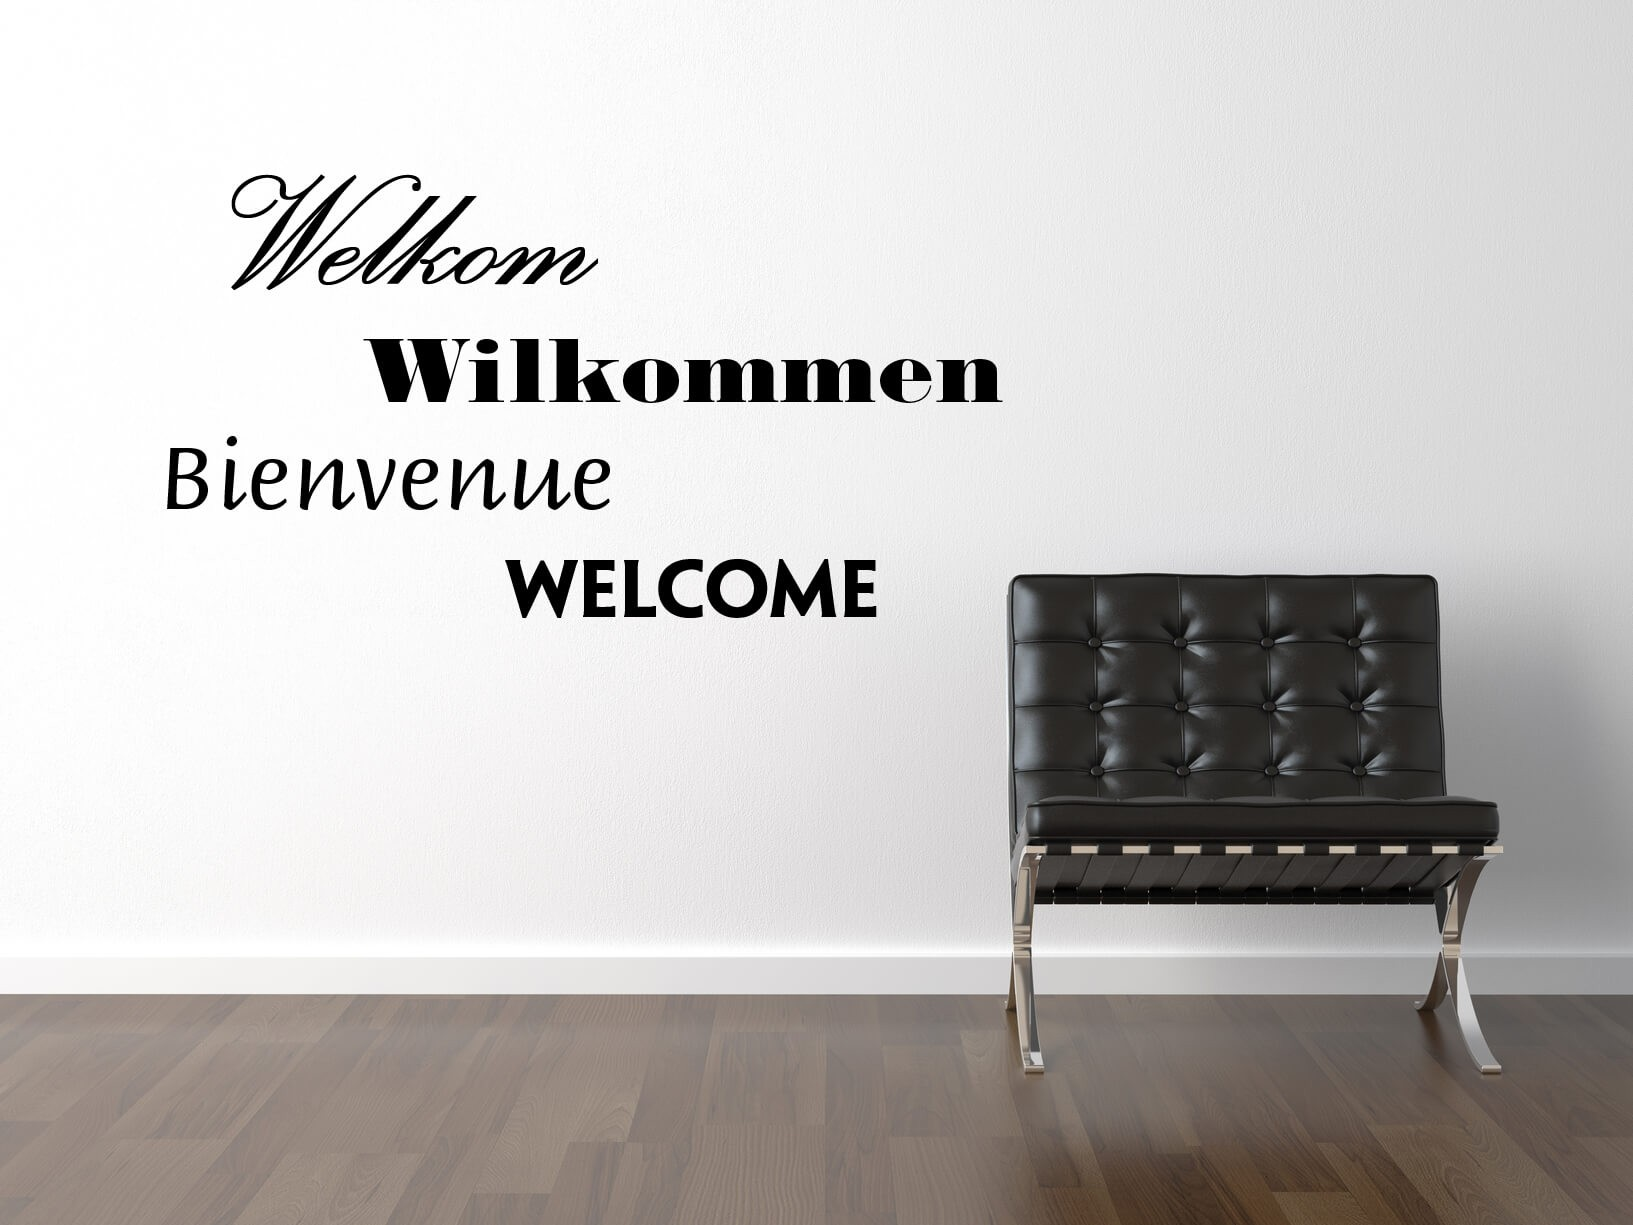 Muursticker Welkom Wilkommen Bienvenue Welcome